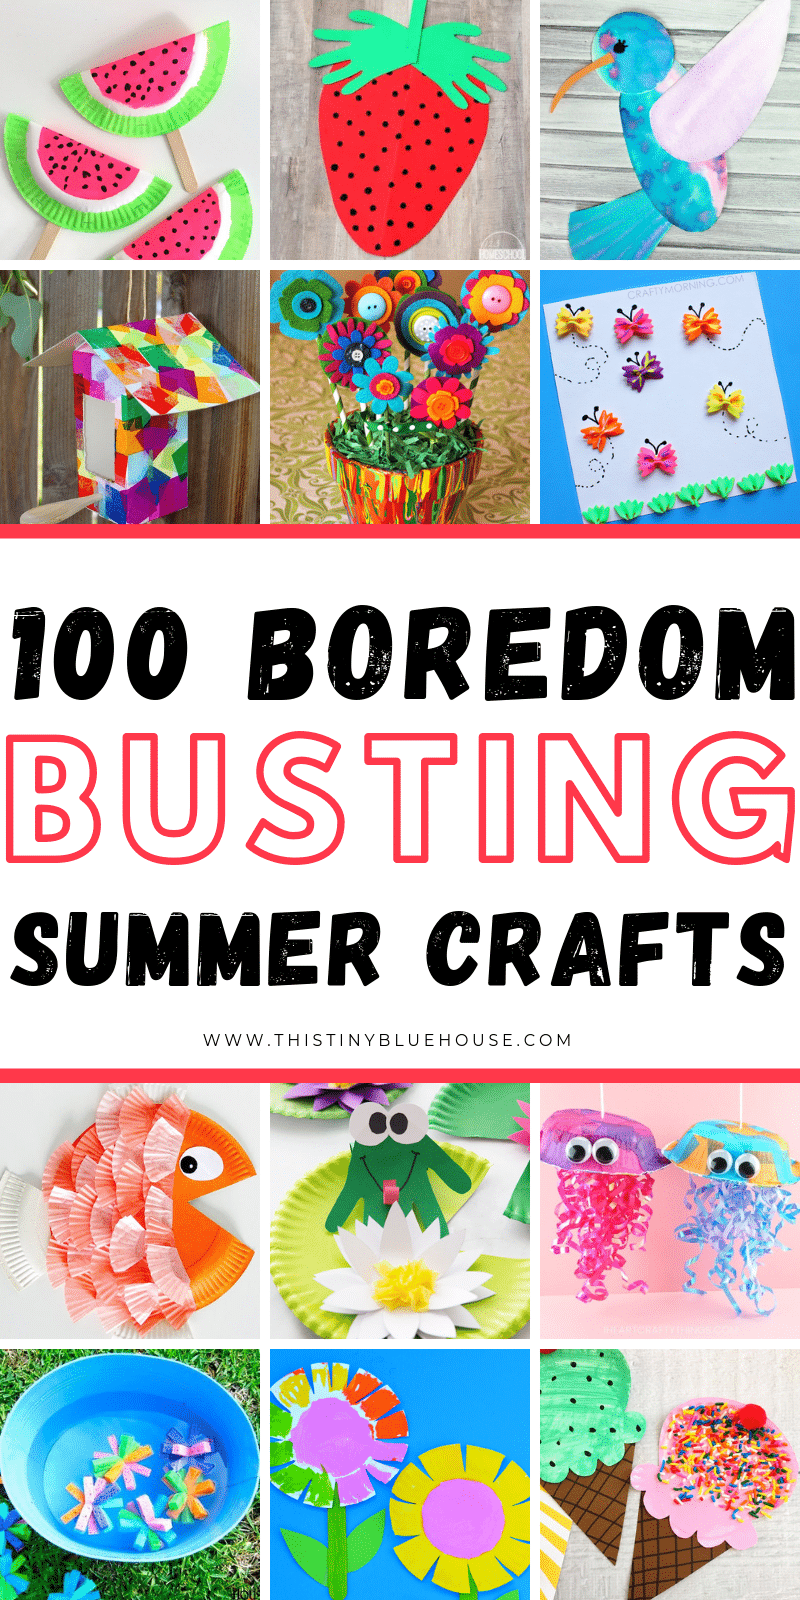 keep your kiddos engaged and busy this summer with these super fun boredom busting summer crafts for kids! Great for kids of all ages these crafts are guaranteed to provide hours of fun. #craftsforkids #craftsforlittlekids #summercraftsforkids #summeractivities #summercrafts #summeractivitiesforlittlekids #summeractivitiesfortoddlers #craftsfortoddlers #summercraftsforpreschoolers